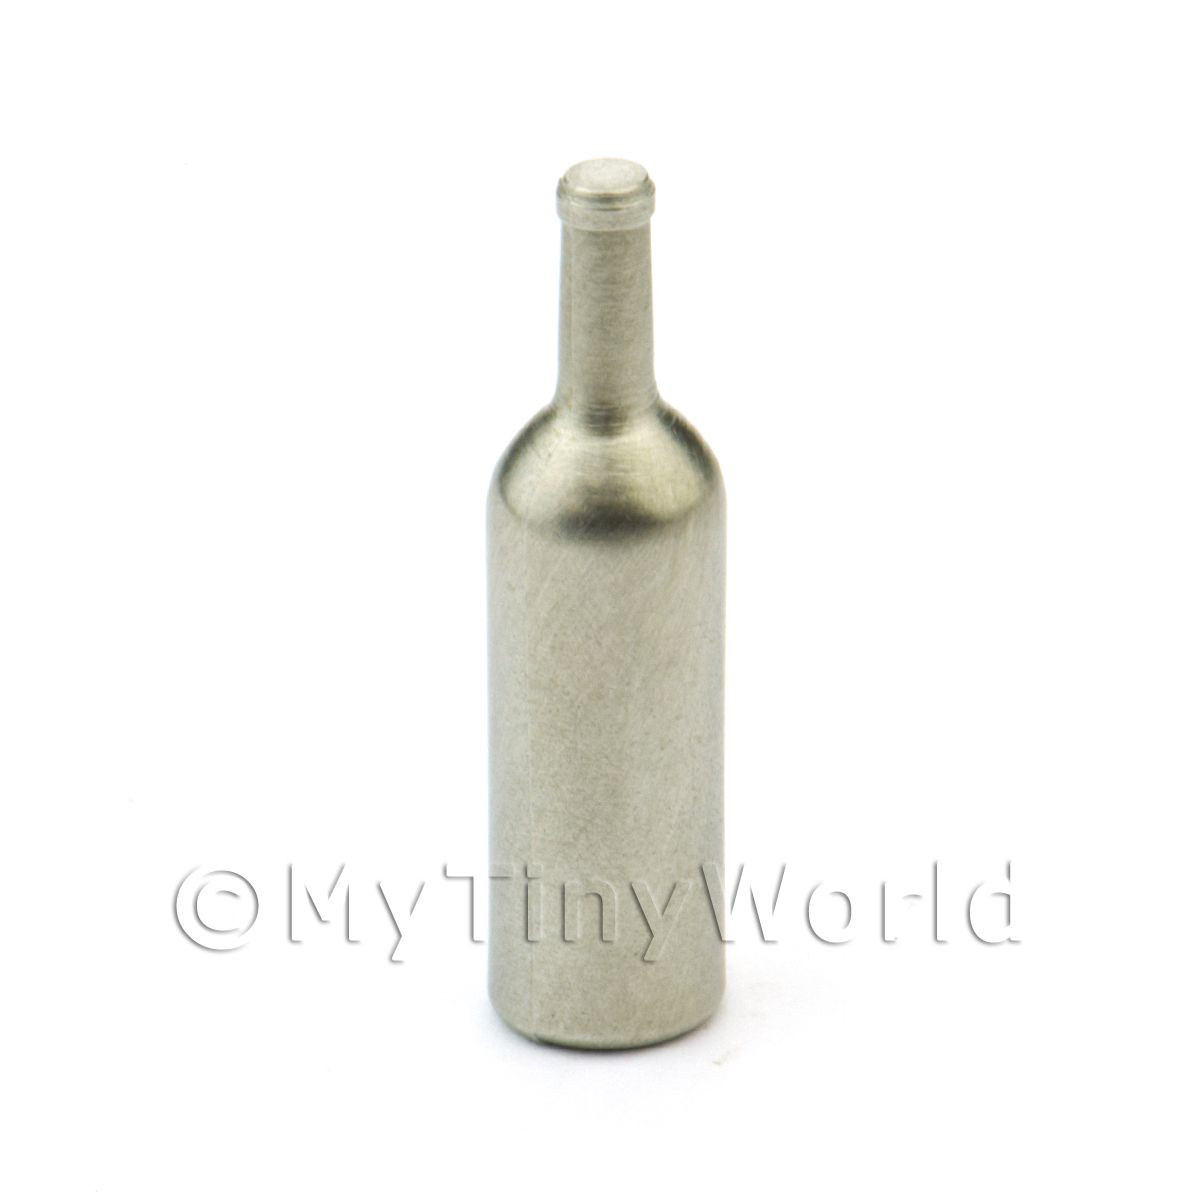 Dolls House Miniature White Metal Wine Bottle